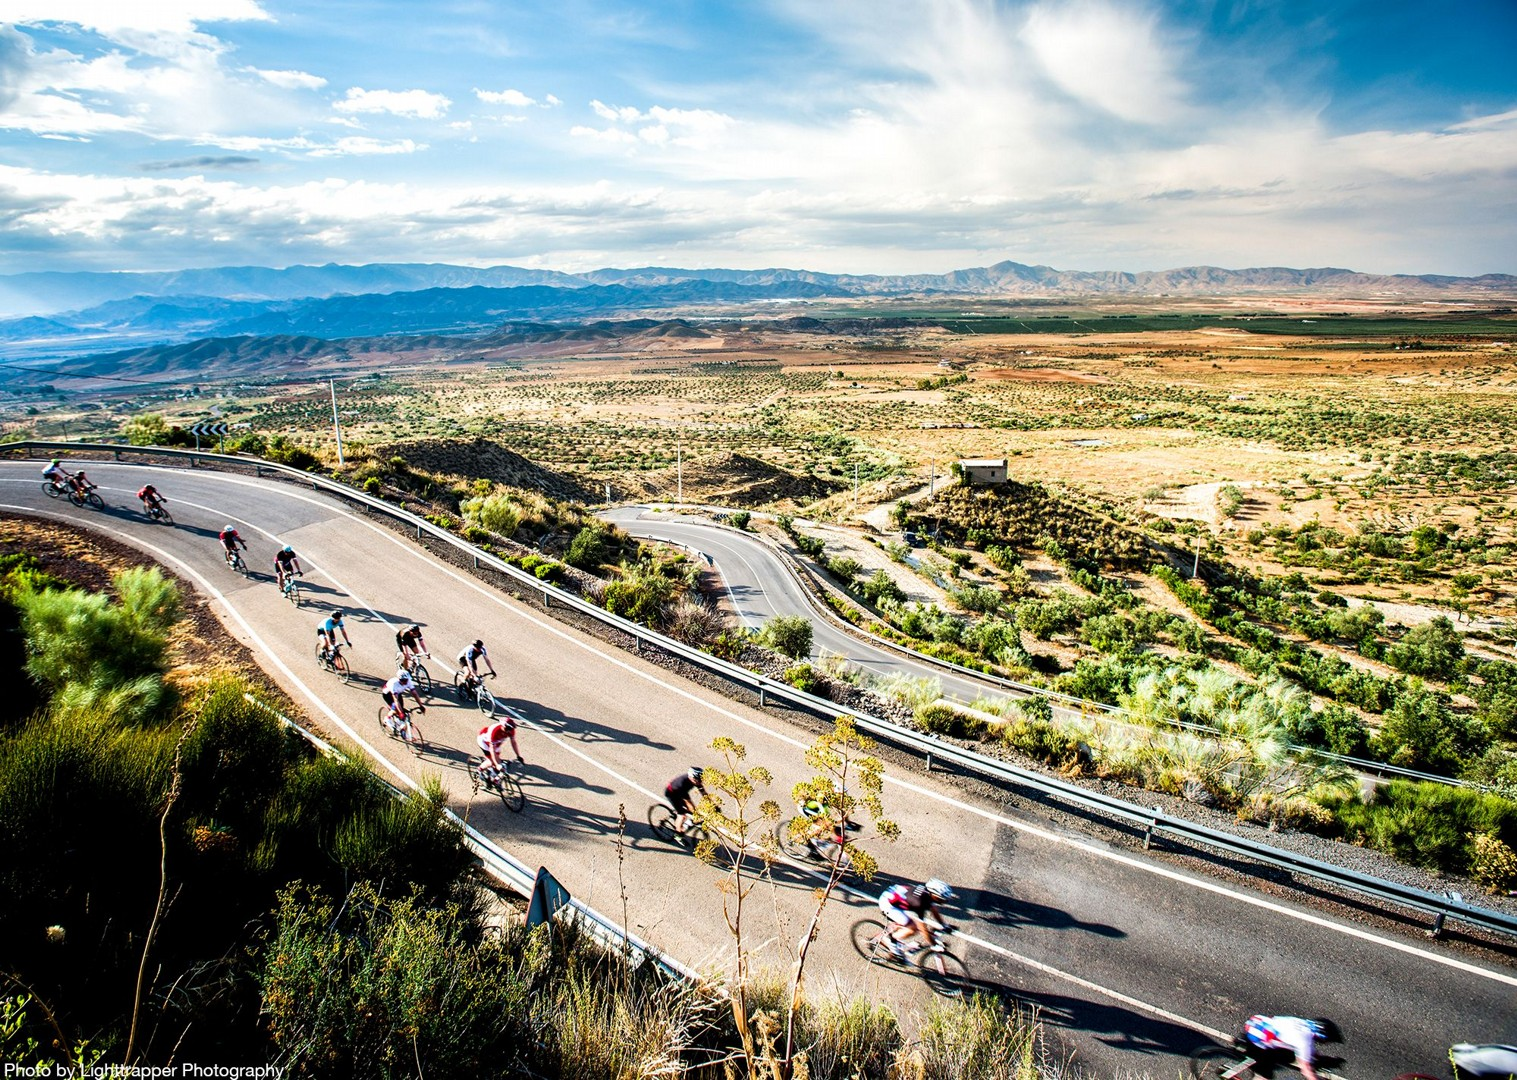 spanish-cycling-saddle-skedaddle-guided-road-cycling-21-day-north-south.jpg - Spain - Basque Country to Andalucia - North to South (21 Days) - Guided Road Cycling Holiday - Road Cycling